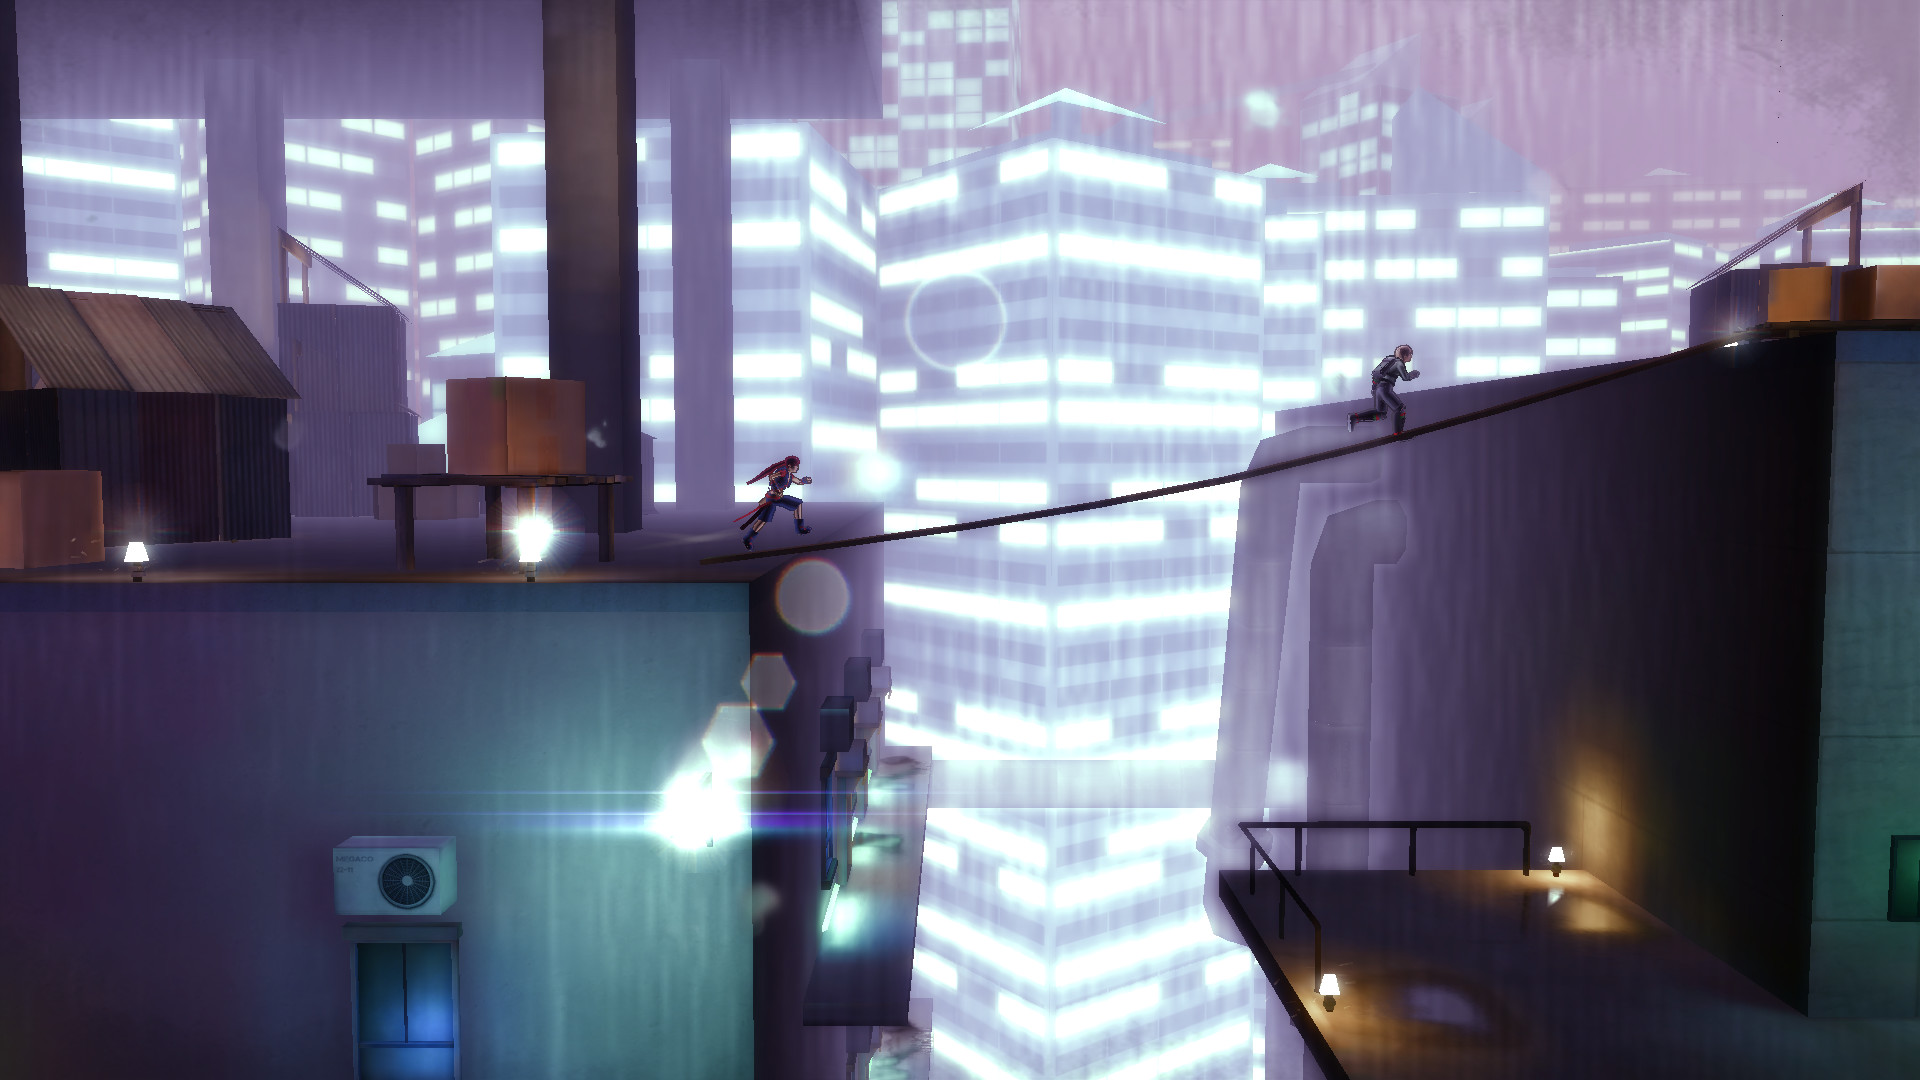 A thin rope between two buildings in a raining city at night. One person is chasing another person across the rope.